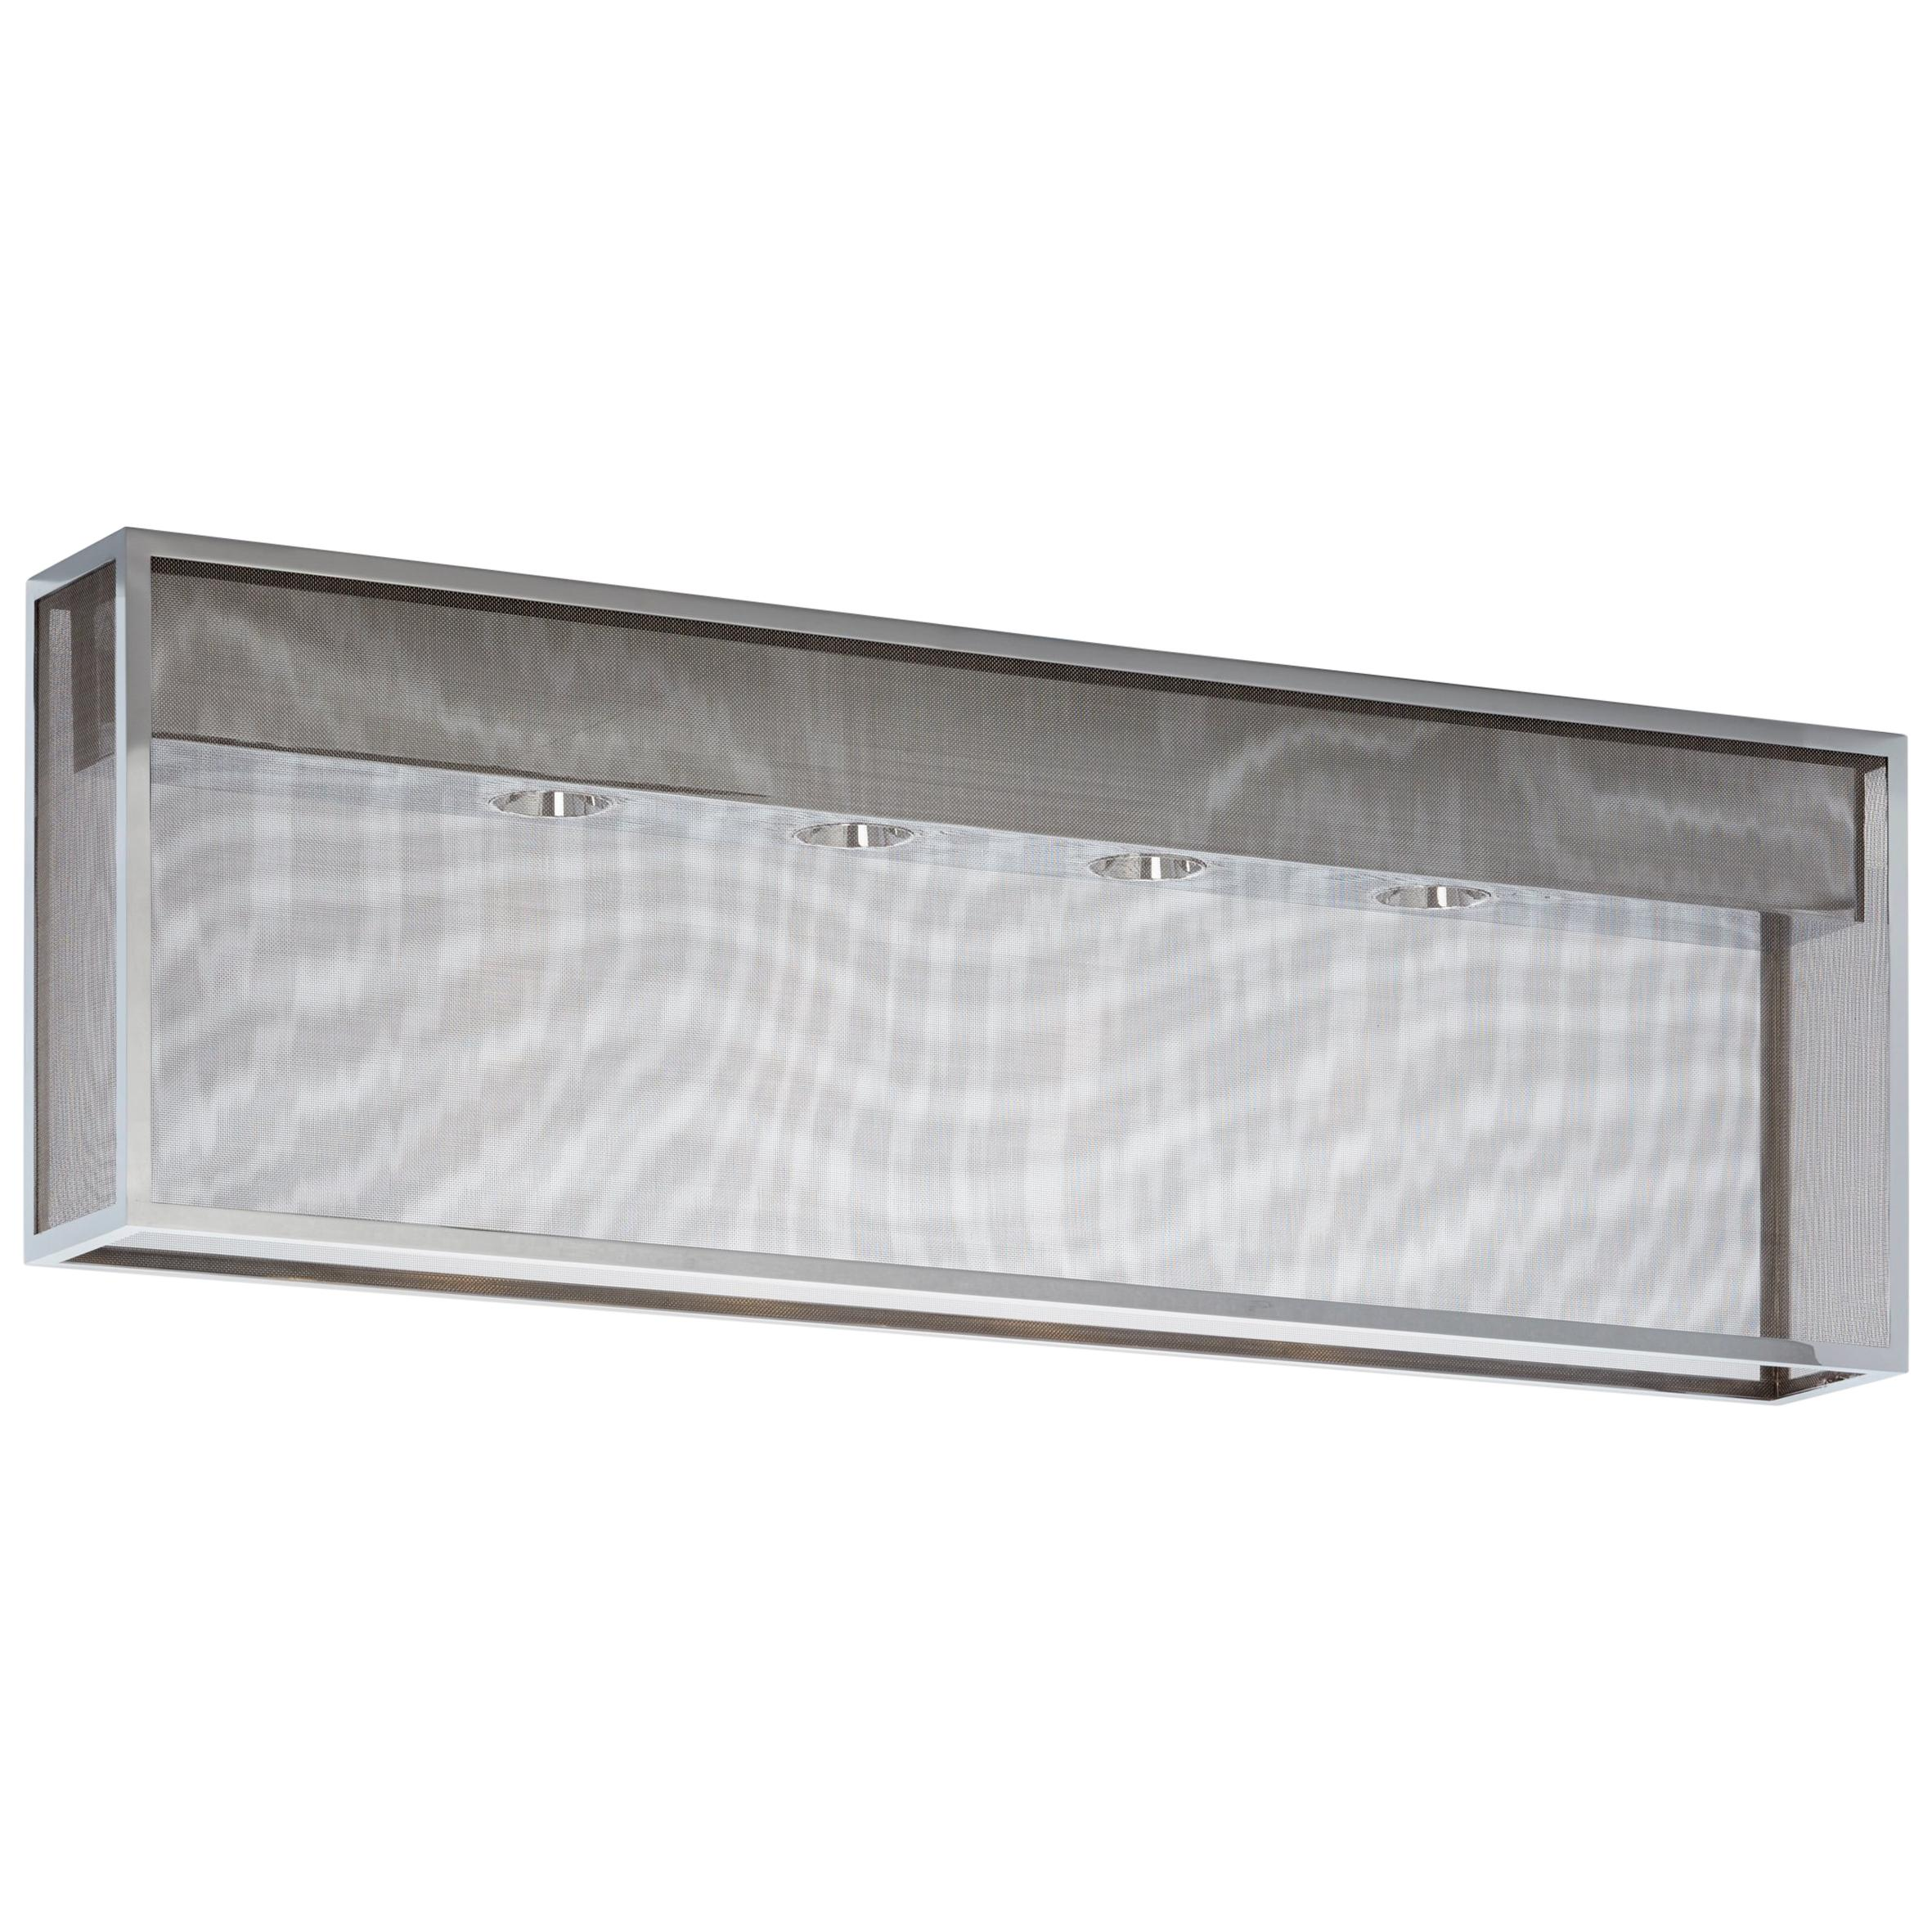 Tekna Tribeca-5 Ceiling Light with Polished Chrome Finish and Chrome Reflector